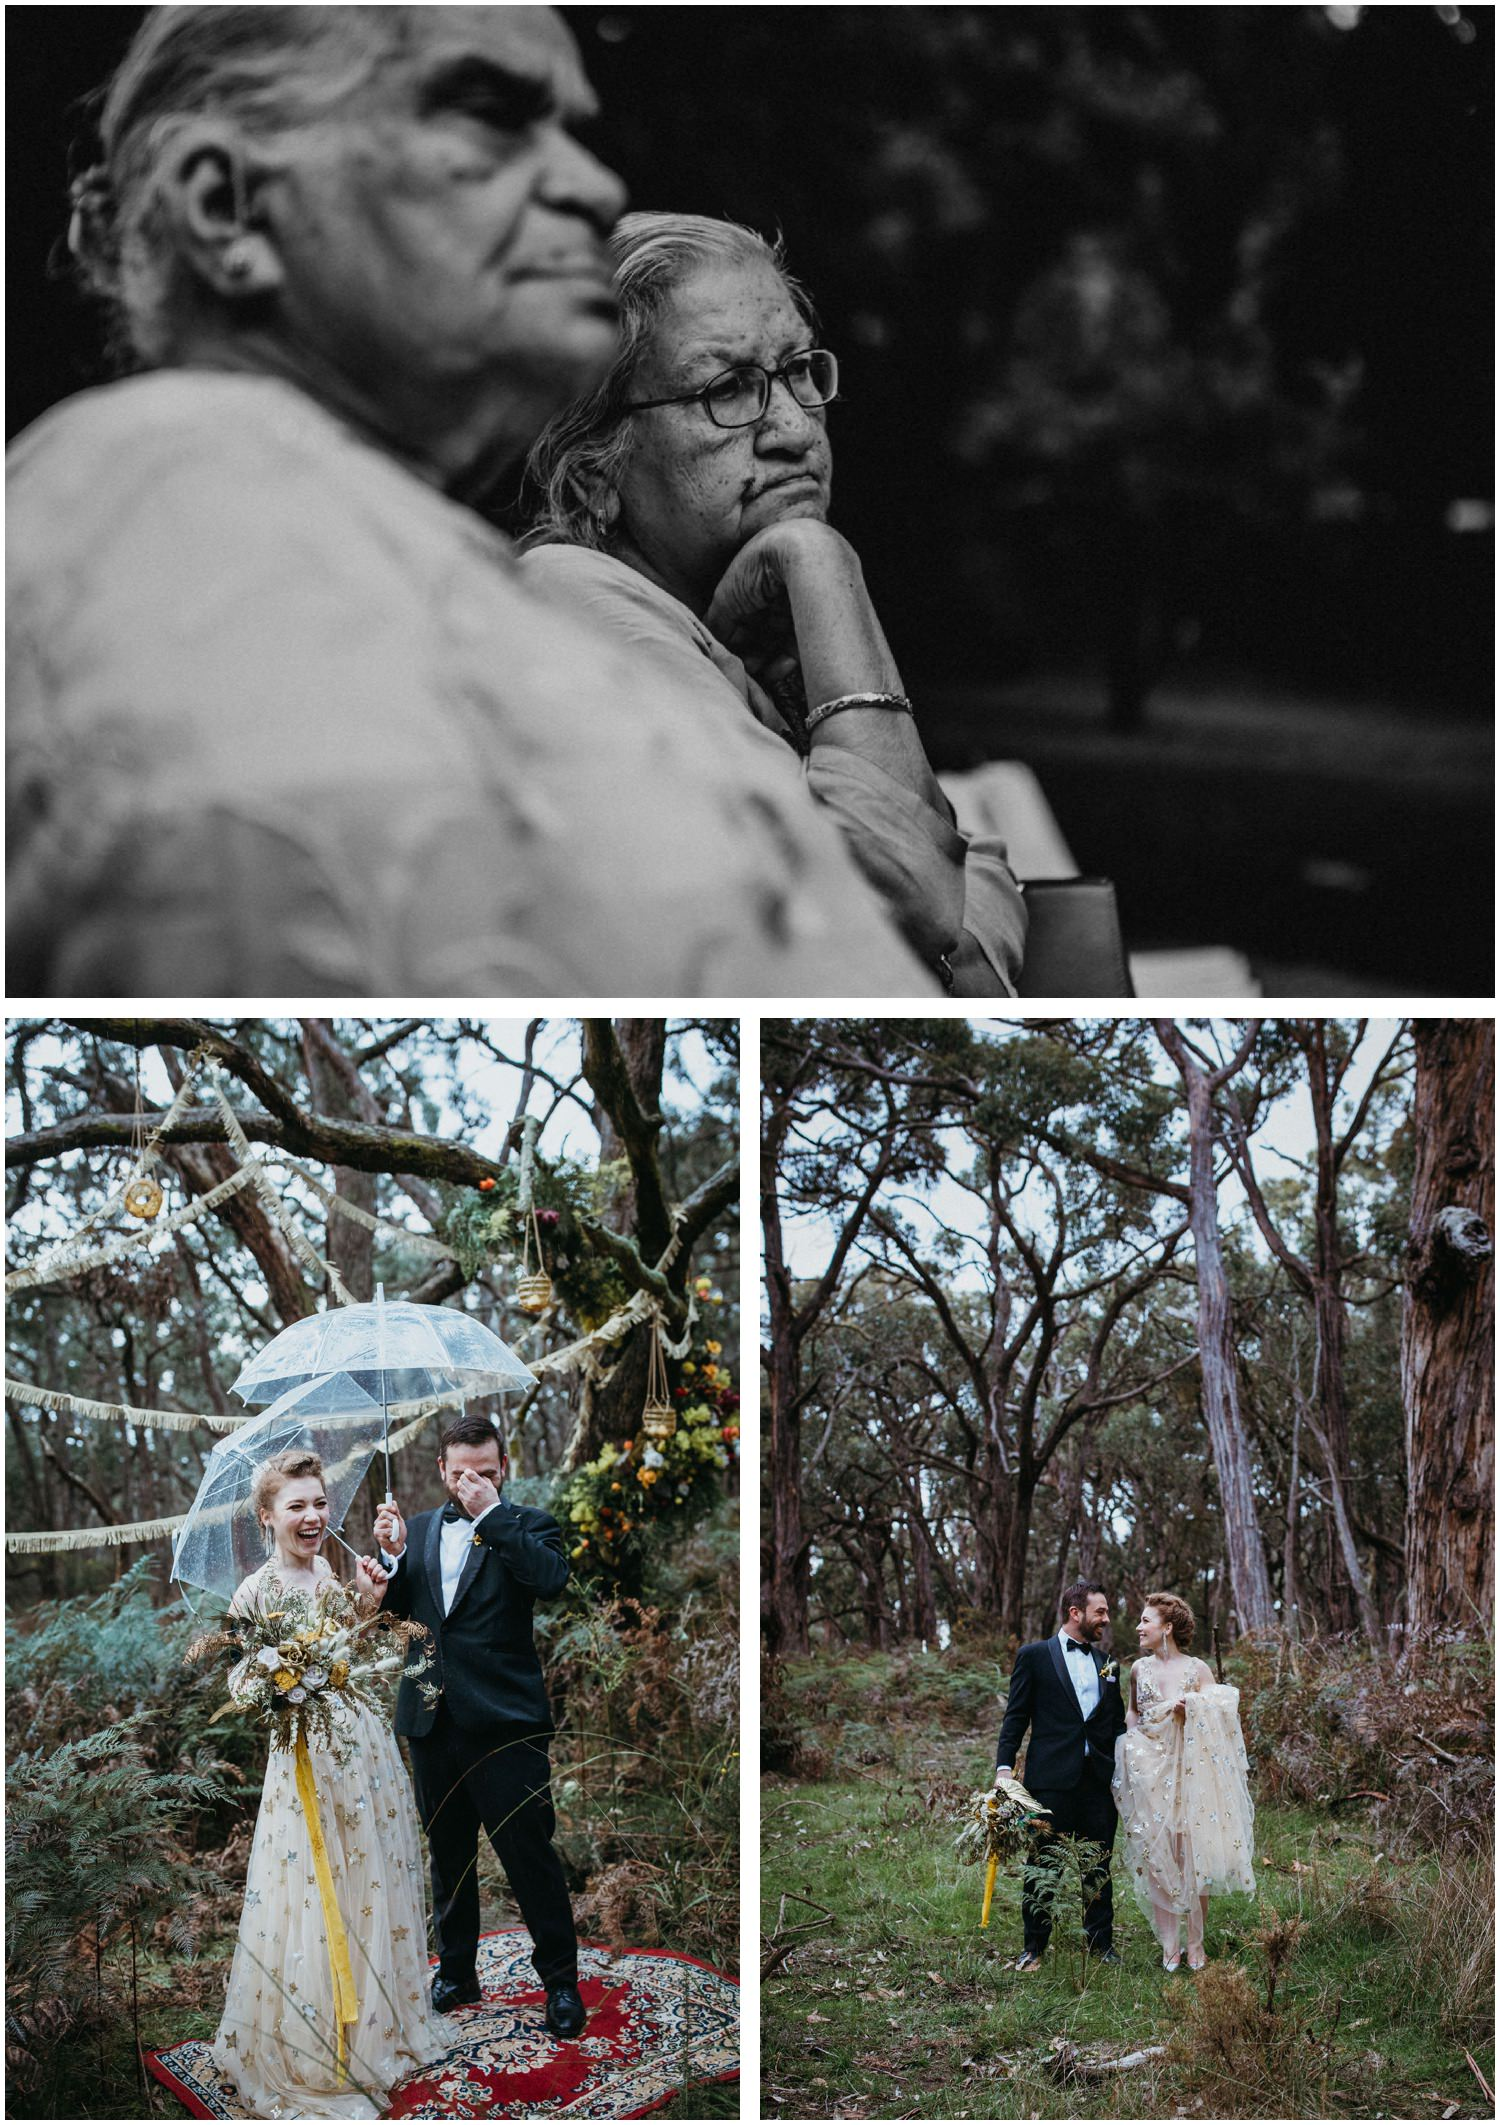 Melbourne Wedding Photographer - 2018 in review -185A0557.jpg